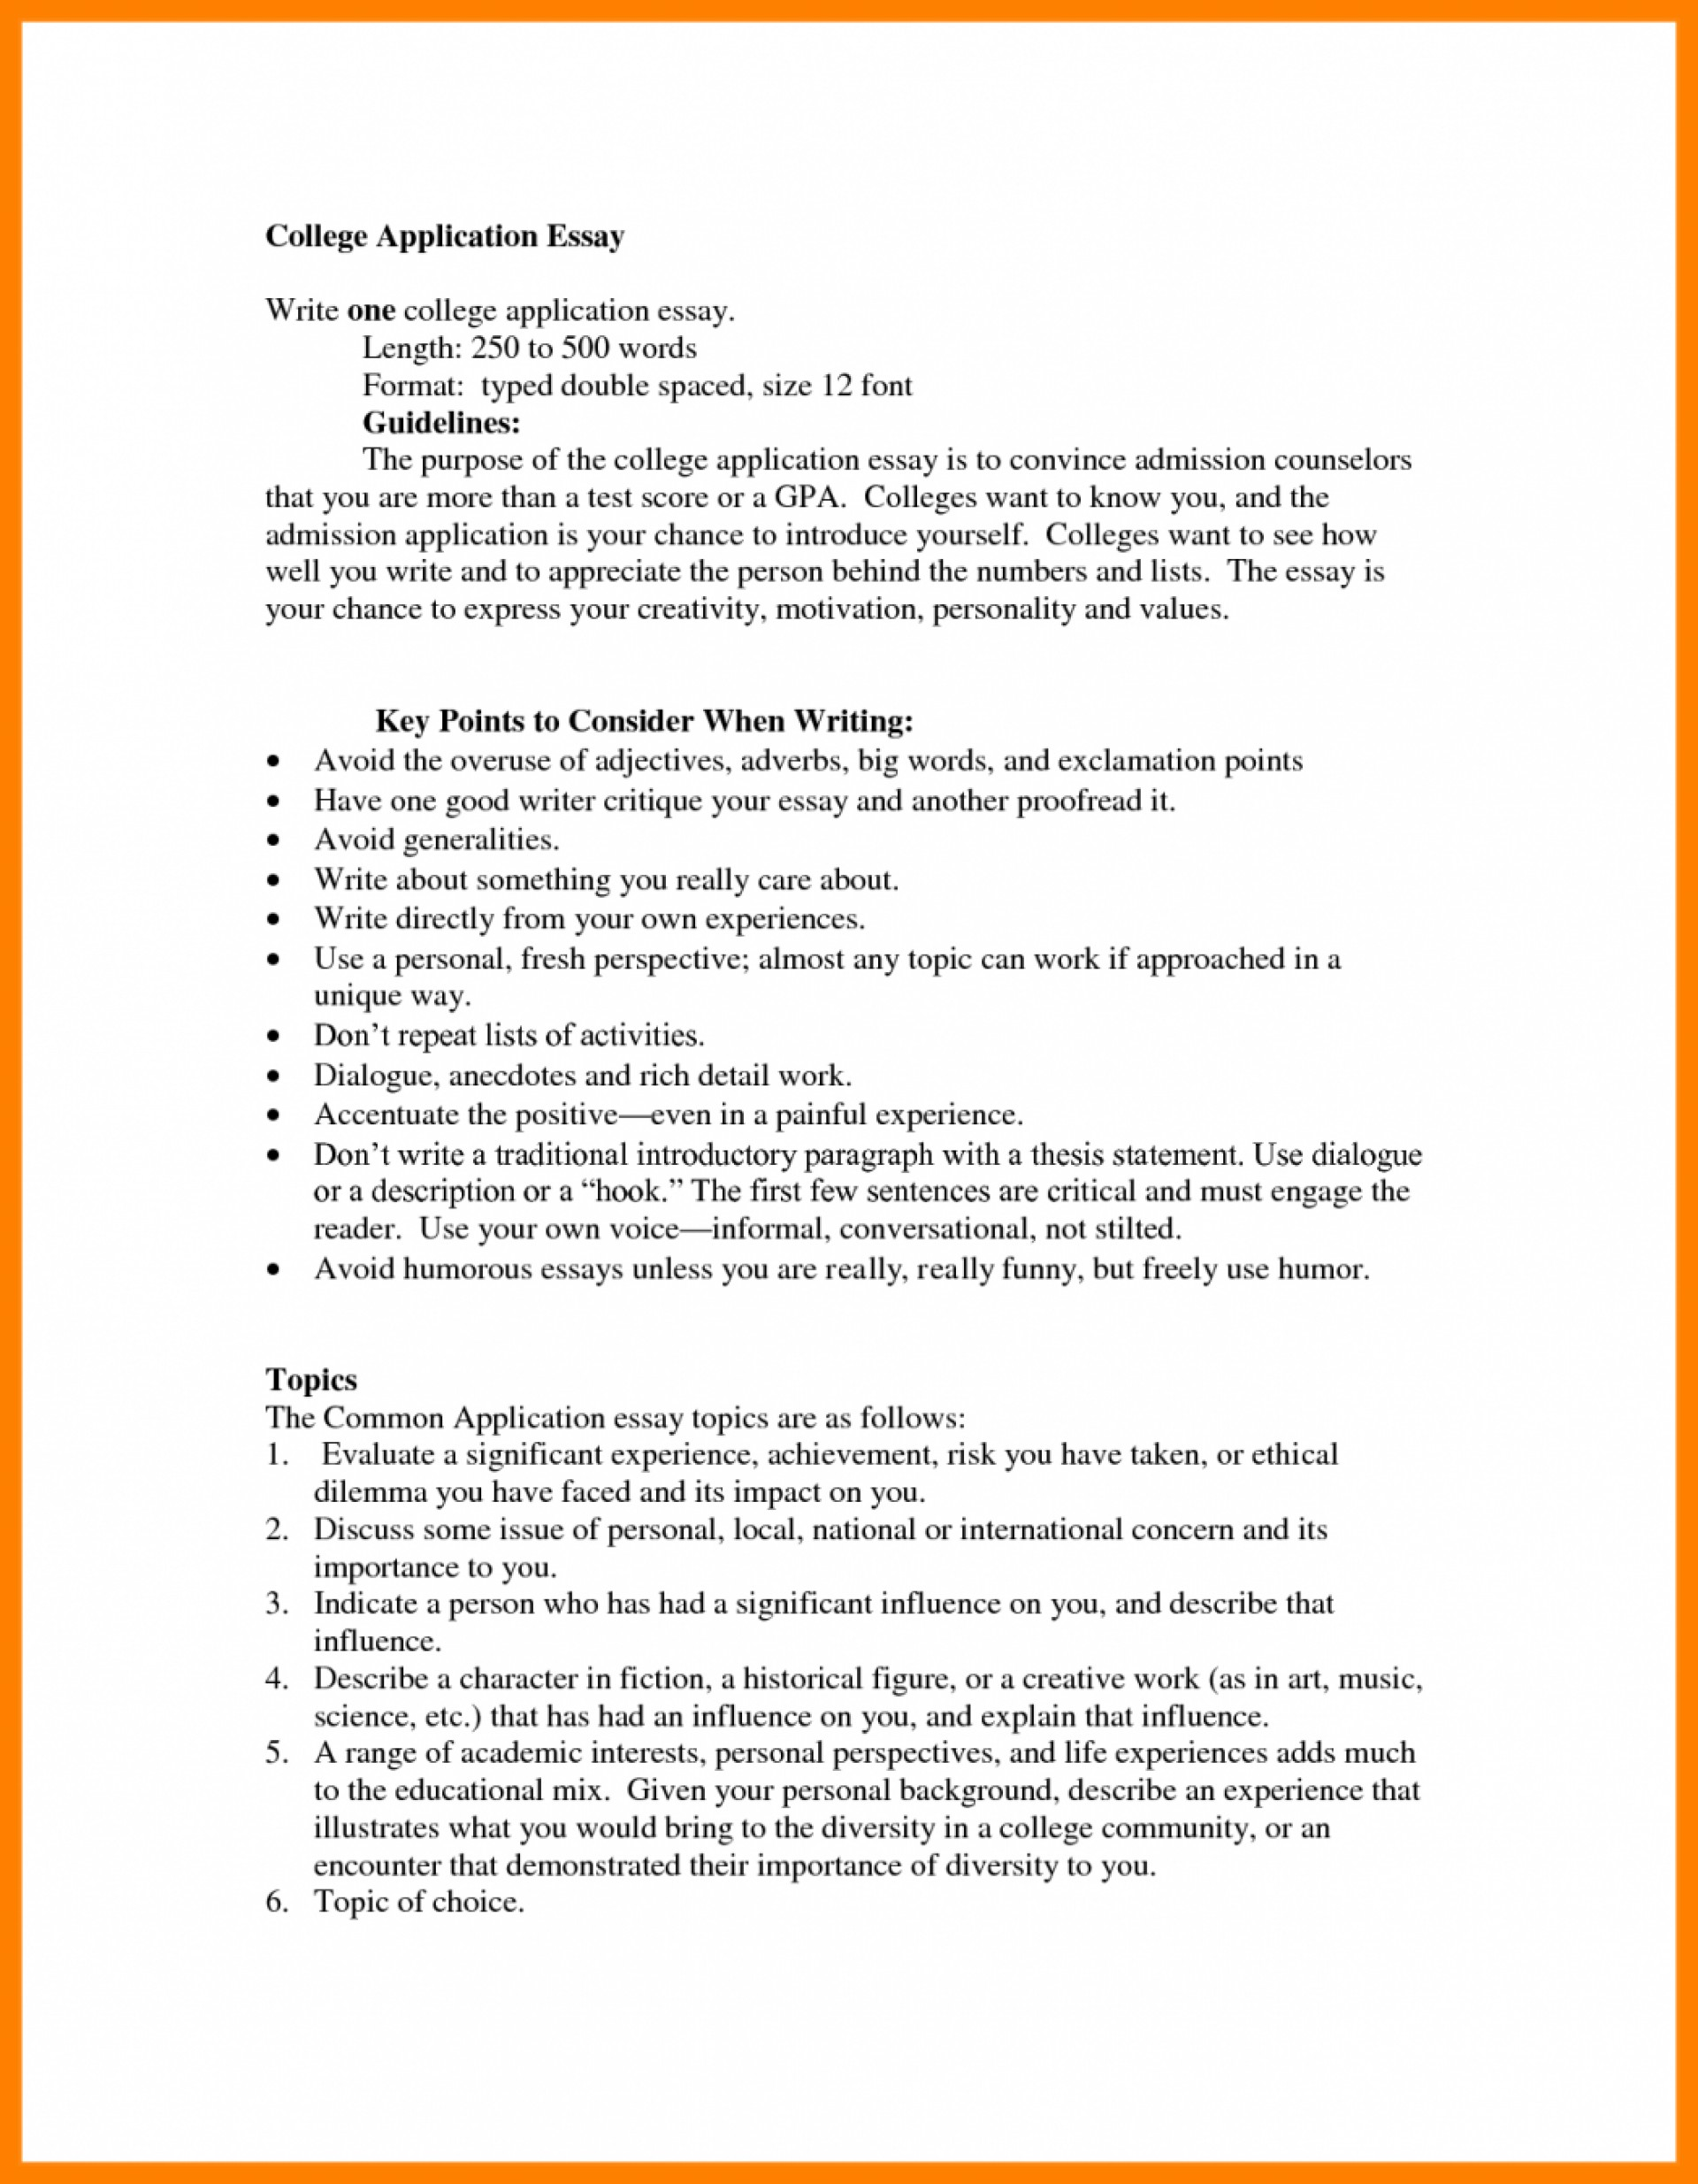 005 College Essay Format Template Example Of Application Double Spaced Compatibl Apa Mla Microsoft Word Heading Formats Examples Common App Sample Stirring Admission 1920